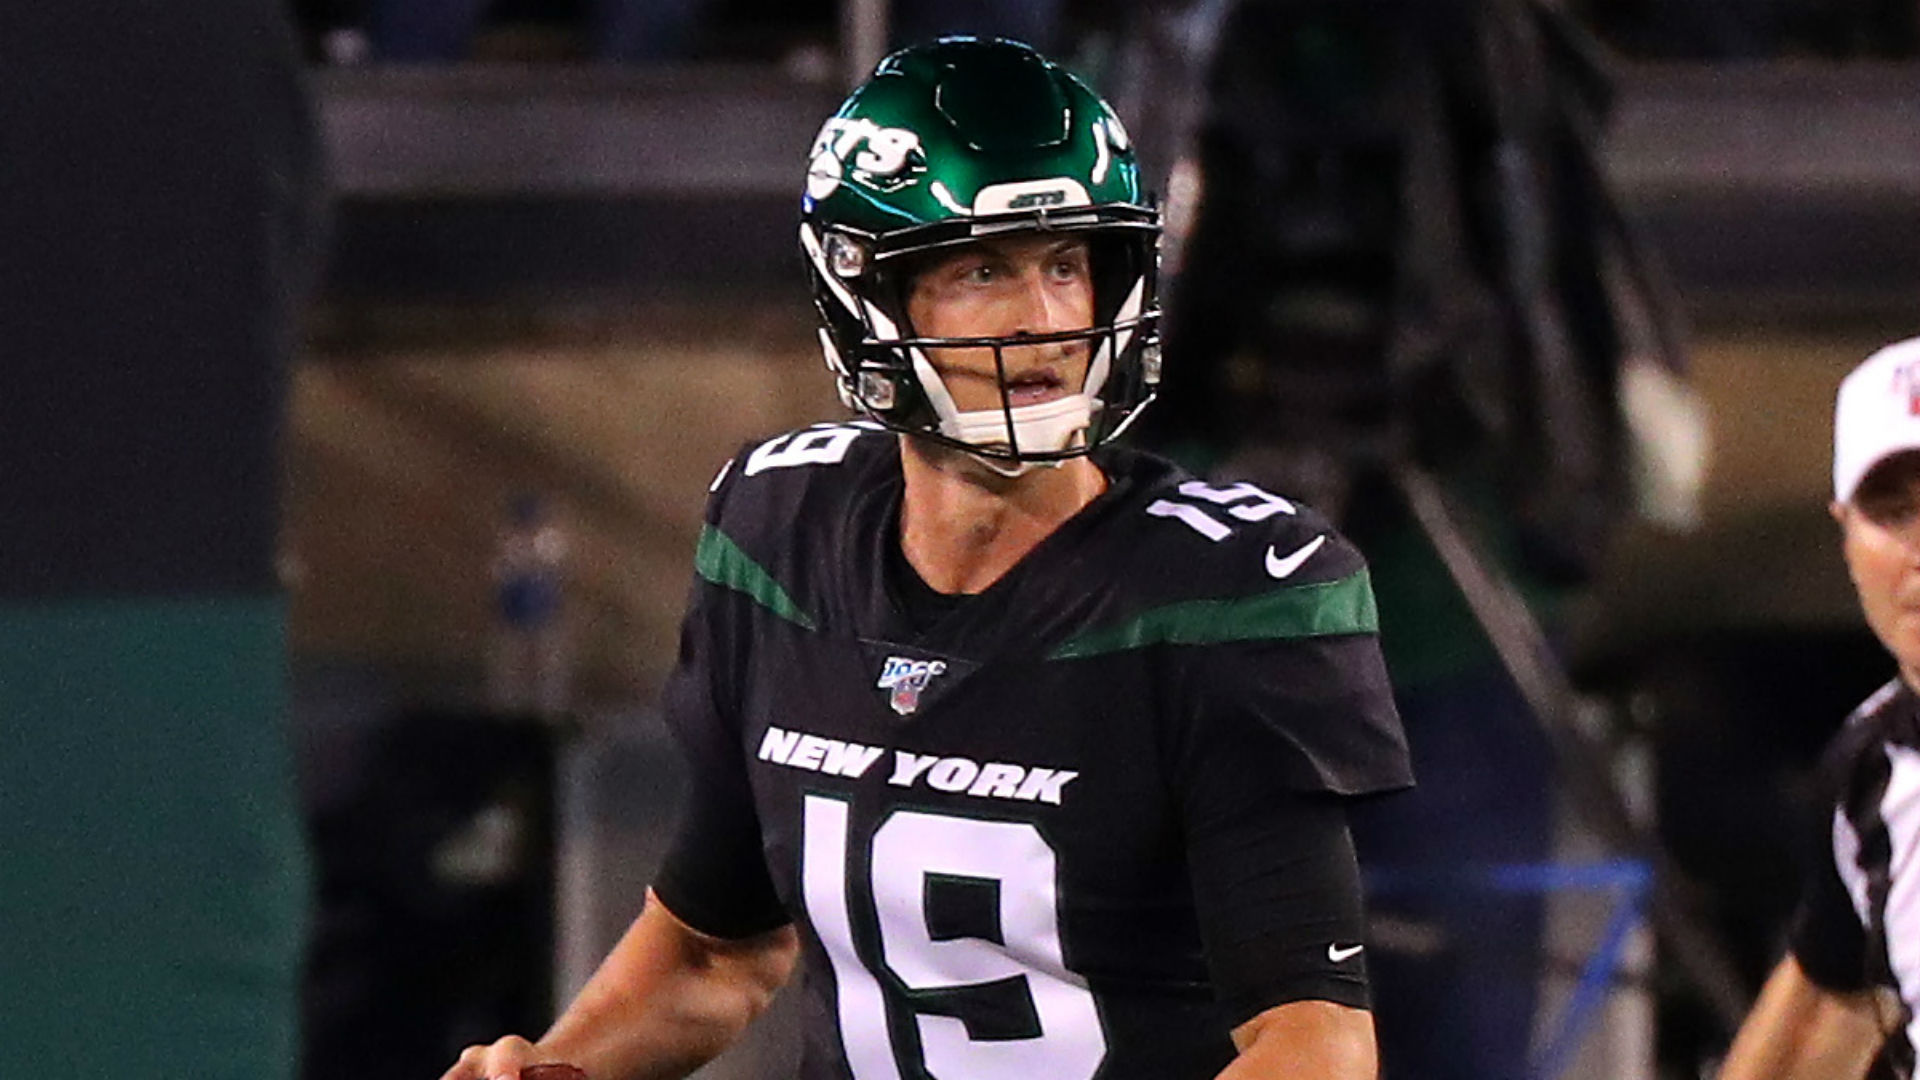 Trevor Siemian injury update: Jets quarterback exits game vs. Browns with ankle injury